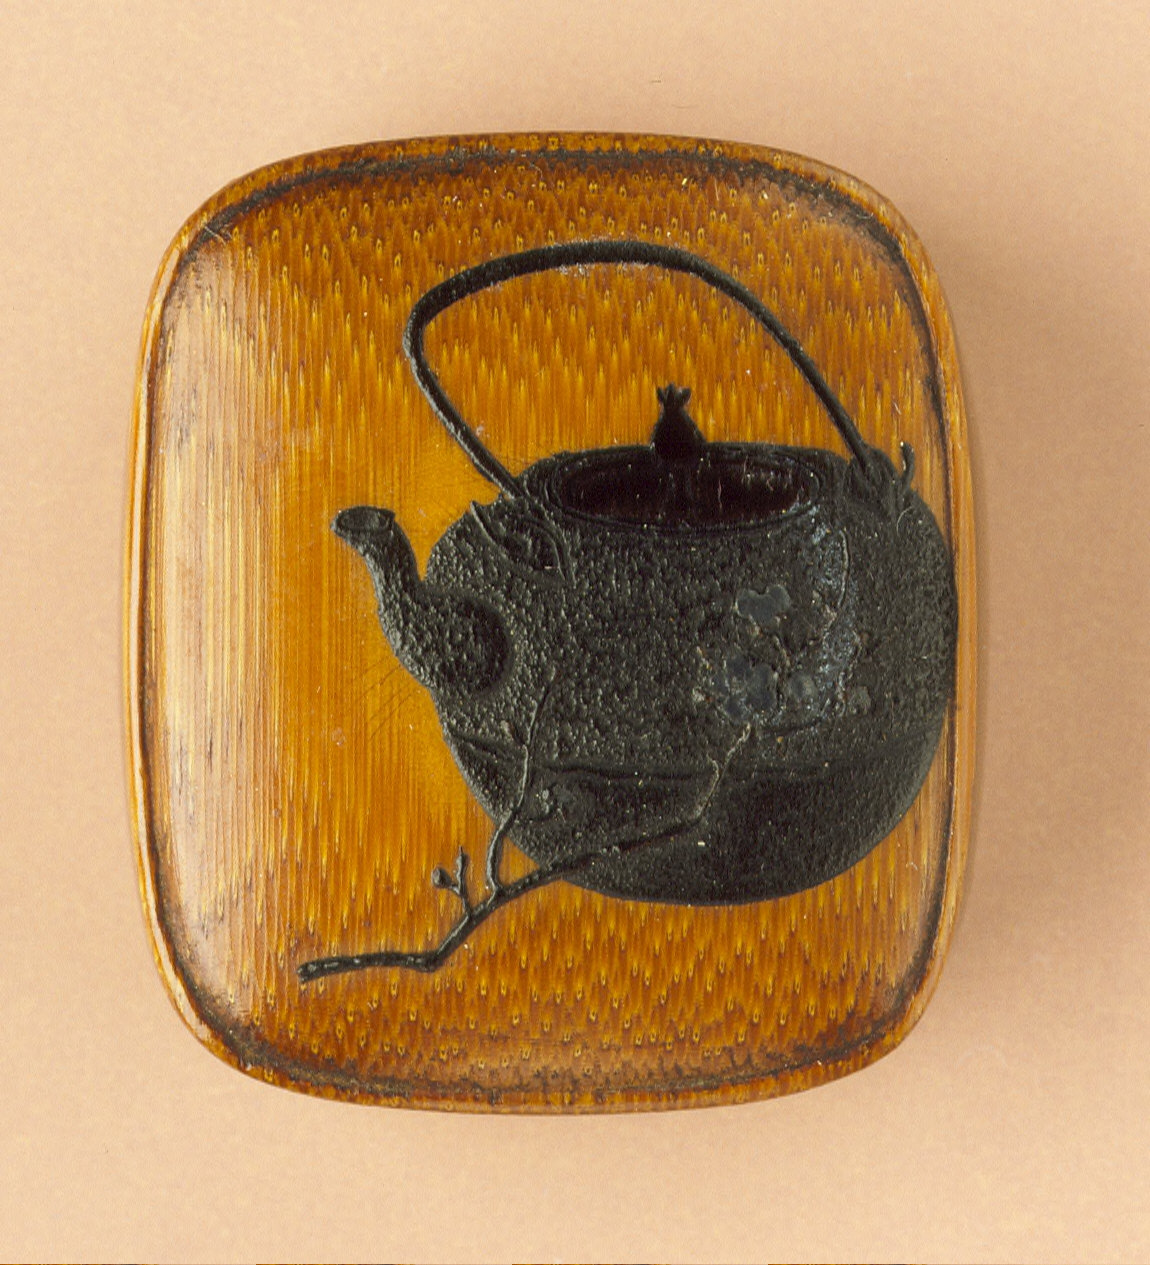 Box with Tea Kettle Design